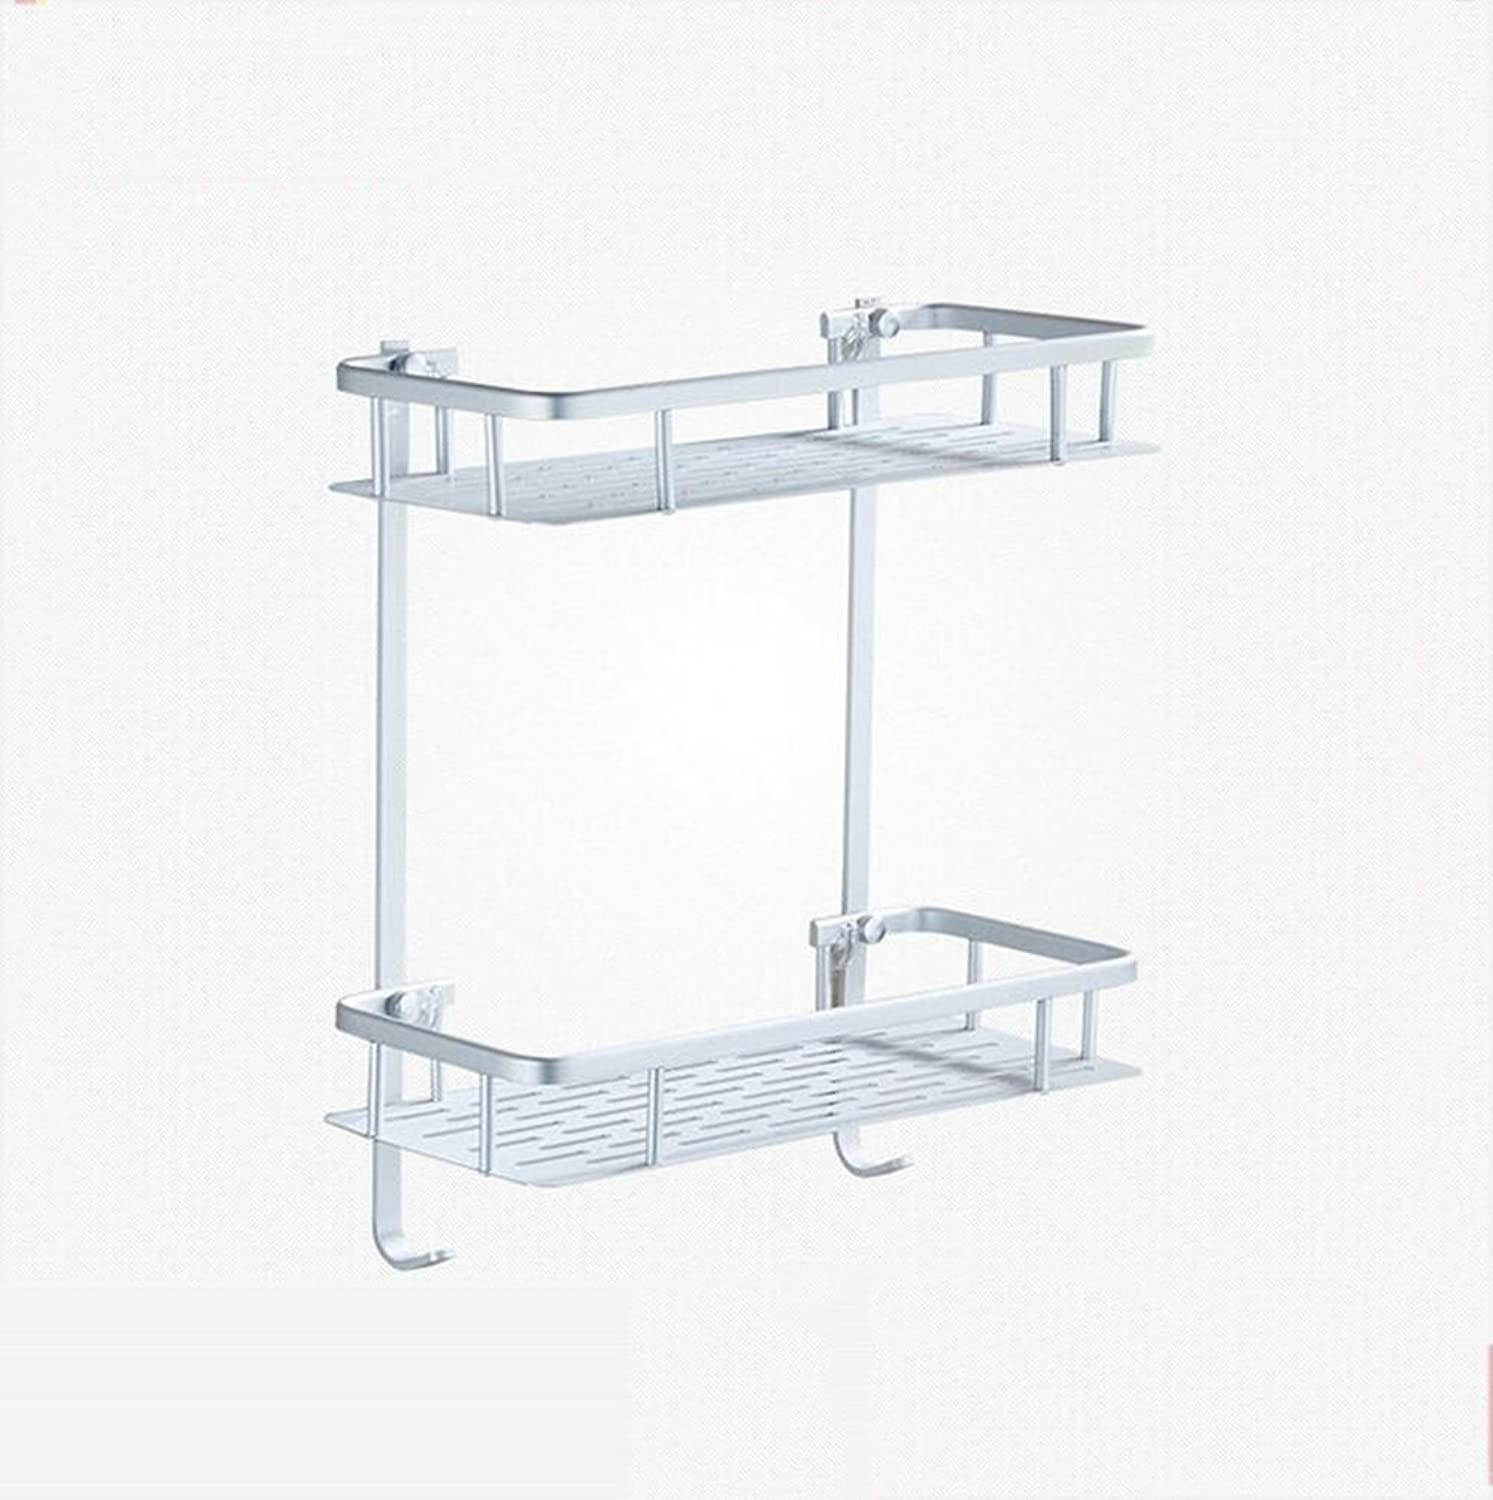 Shelves Bathroom Racks Toilet Paste Hook Storage Rack Hook Toilet Bathroom Right Angle Shelf Wall Hanging